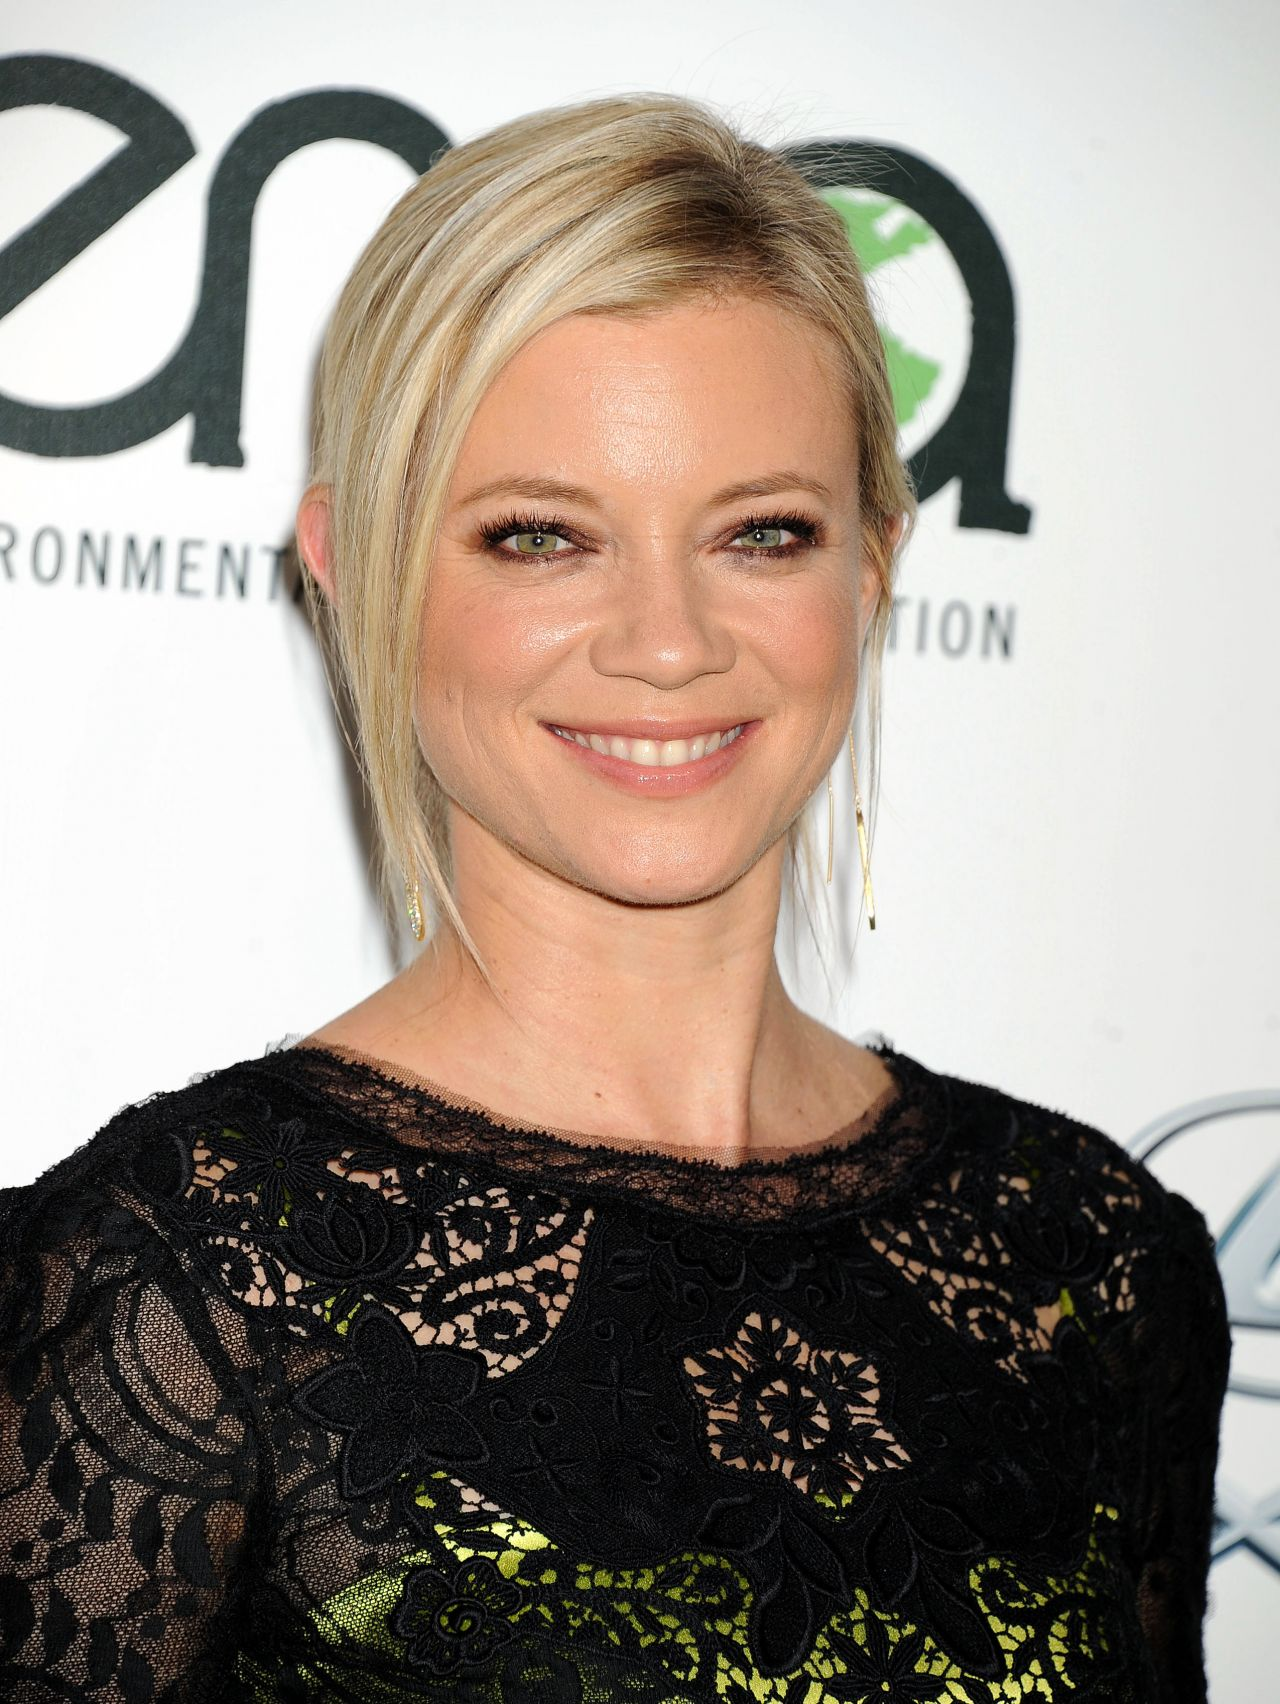 Amy Smart Red Carpet Photos - 23rd Annual Environmental Media Awards in Burbank